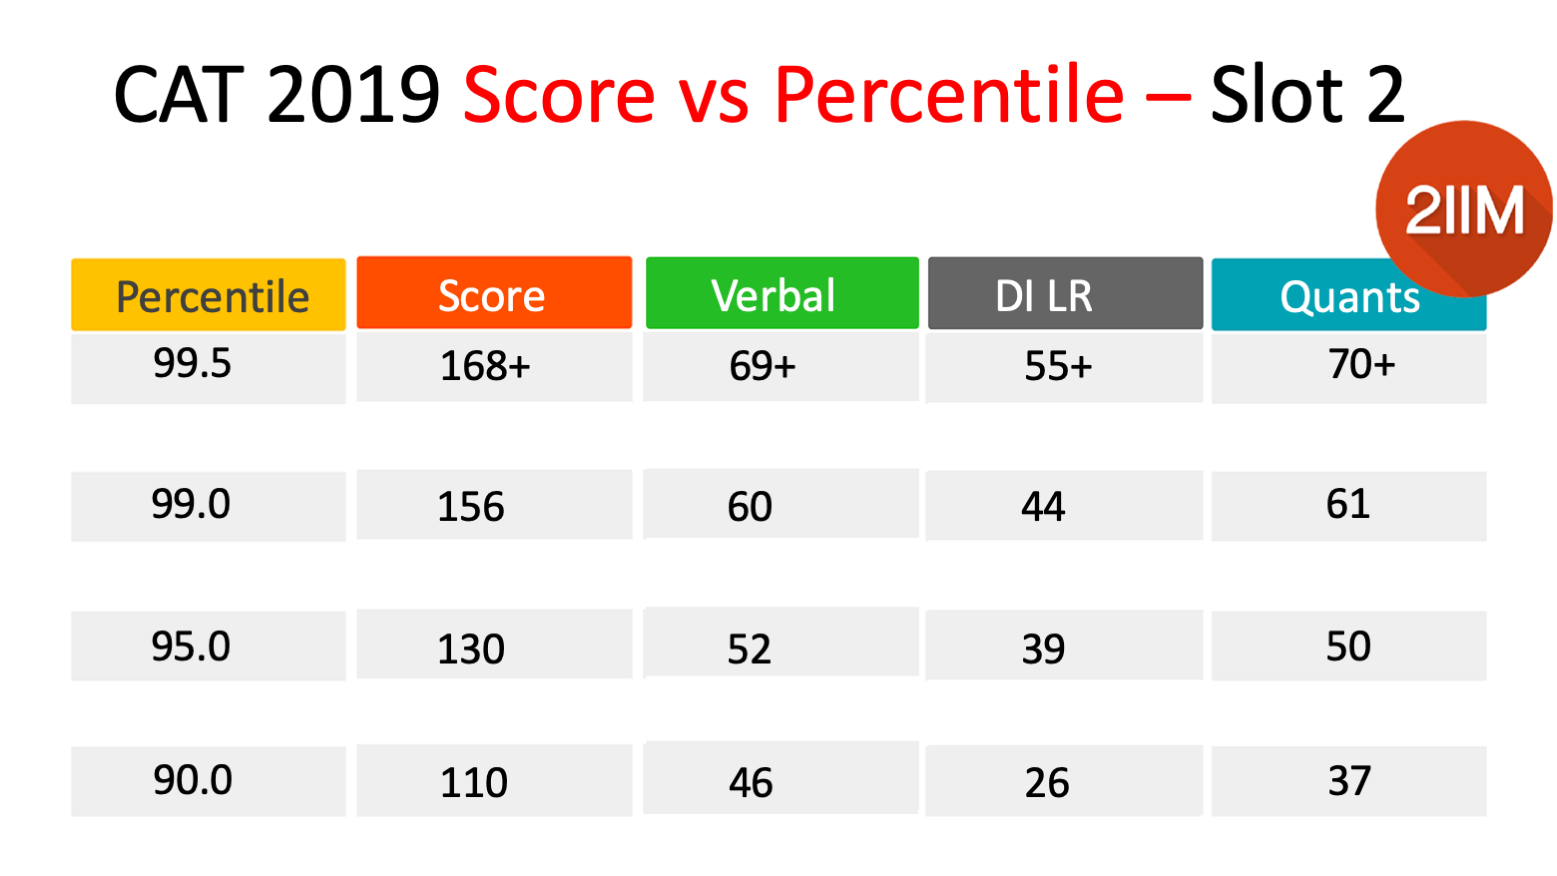 CAT 2019 - Slot 2 - Score to Percentile Table